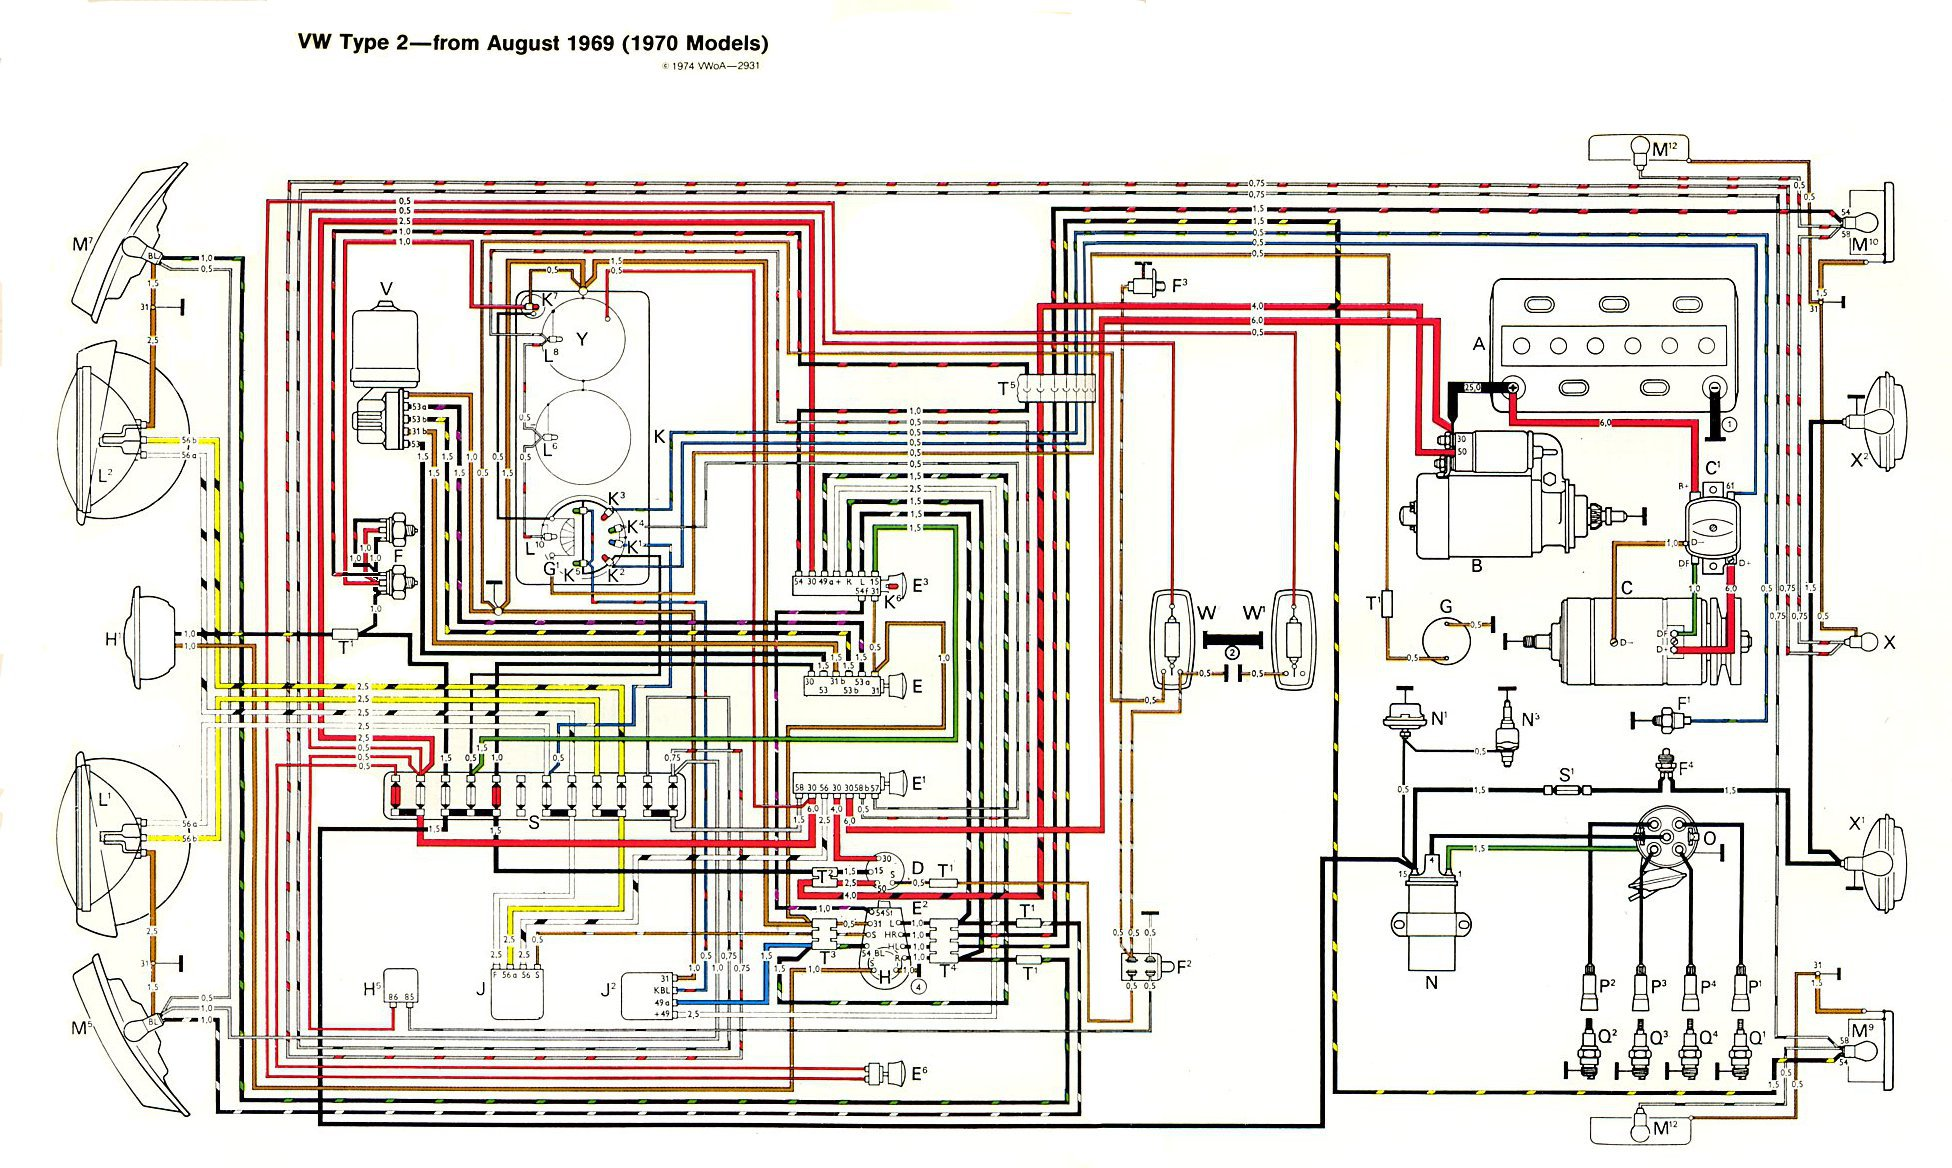 baybus_70 thesamba com type 2 wiring diagrams Wiring Harness Diagram at fashall.co